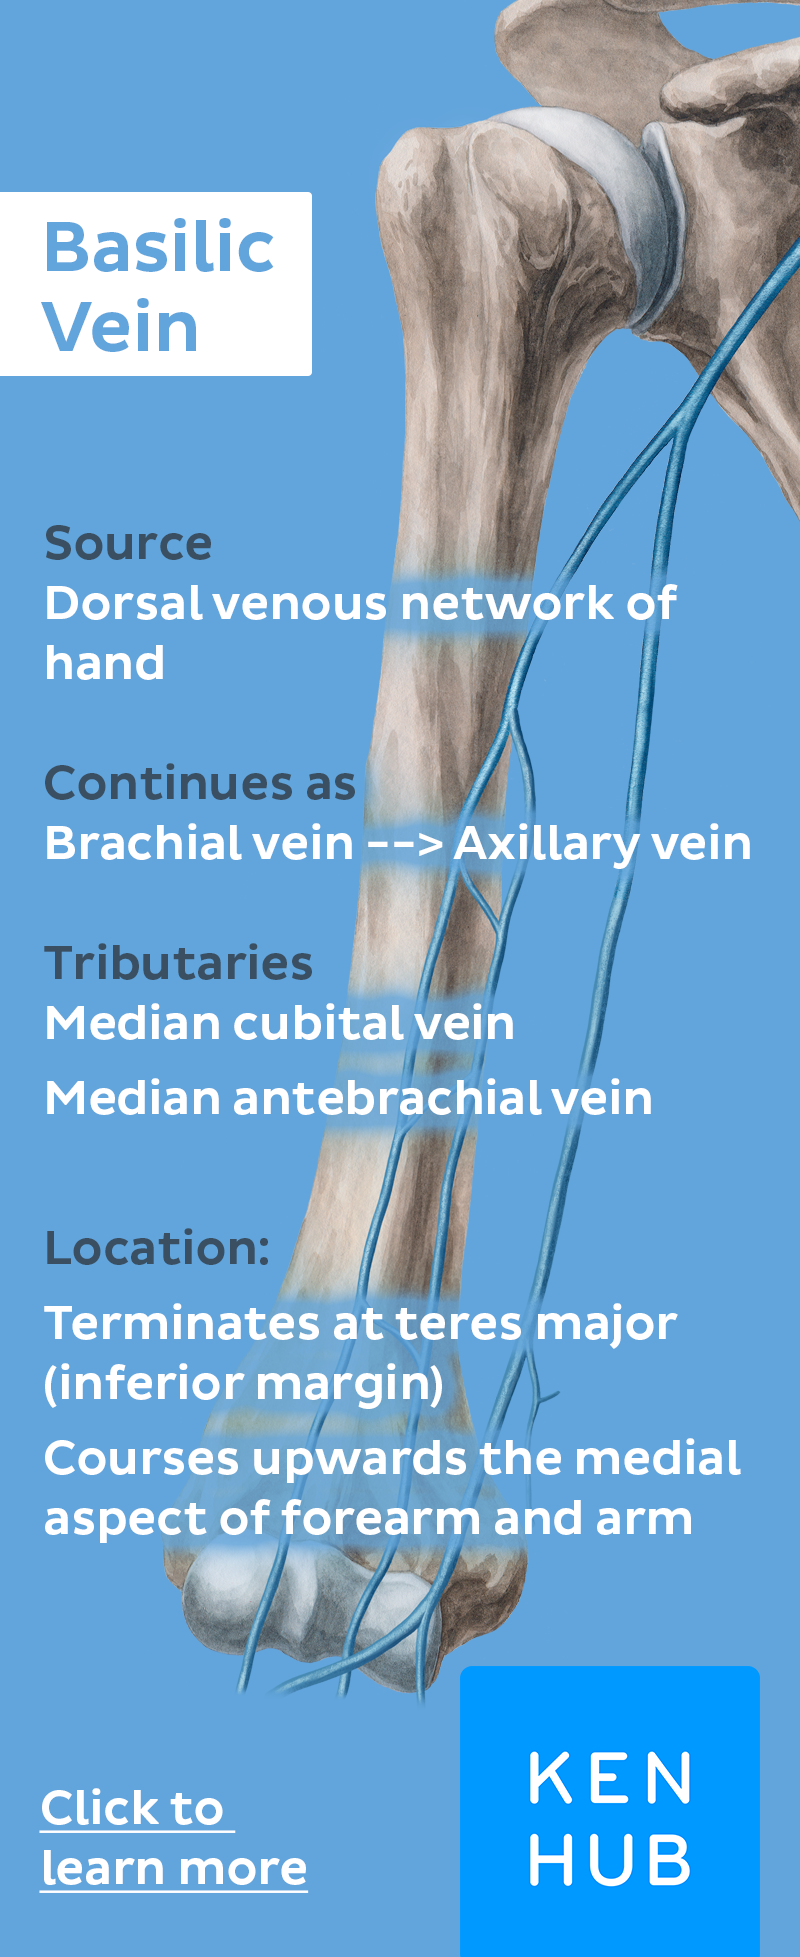 Basilic Vein Anatomy Medical And Medicine